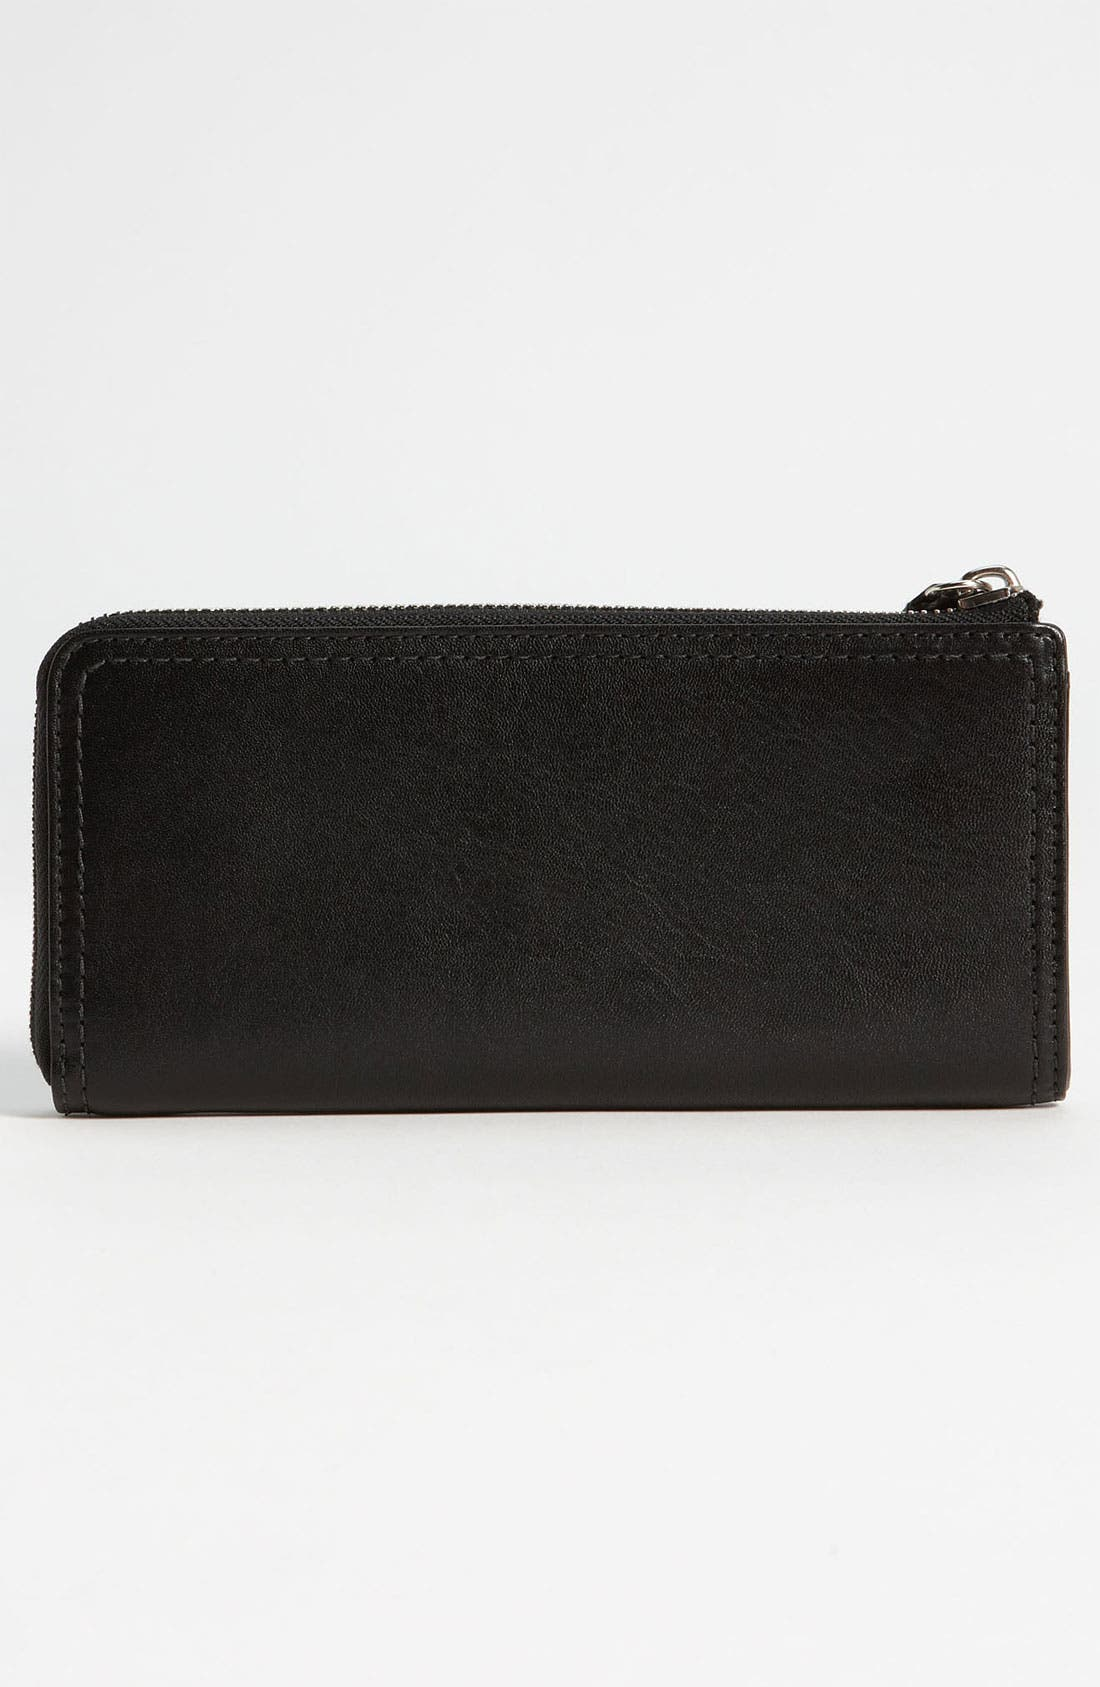 Alternate Image 3  - COACH 'Legacy' Leather Wallet